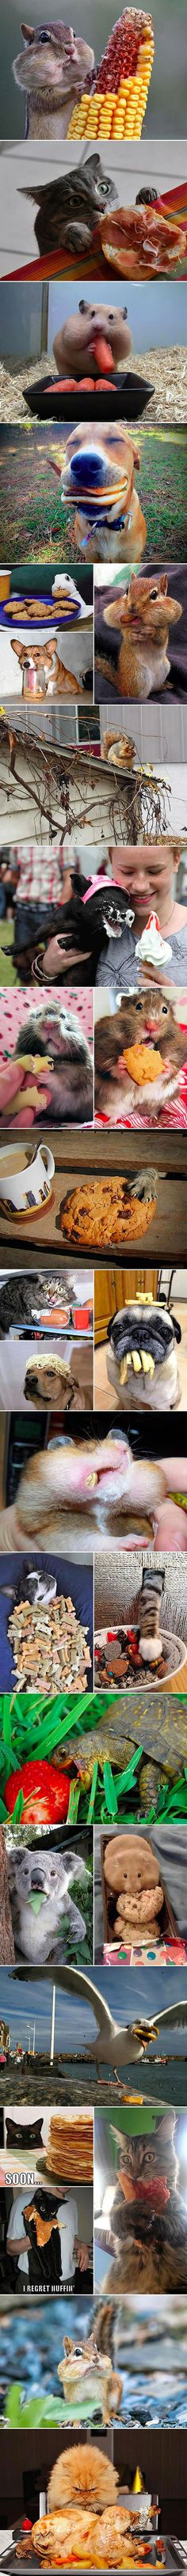 Animals that have already given up on their new year's diets...